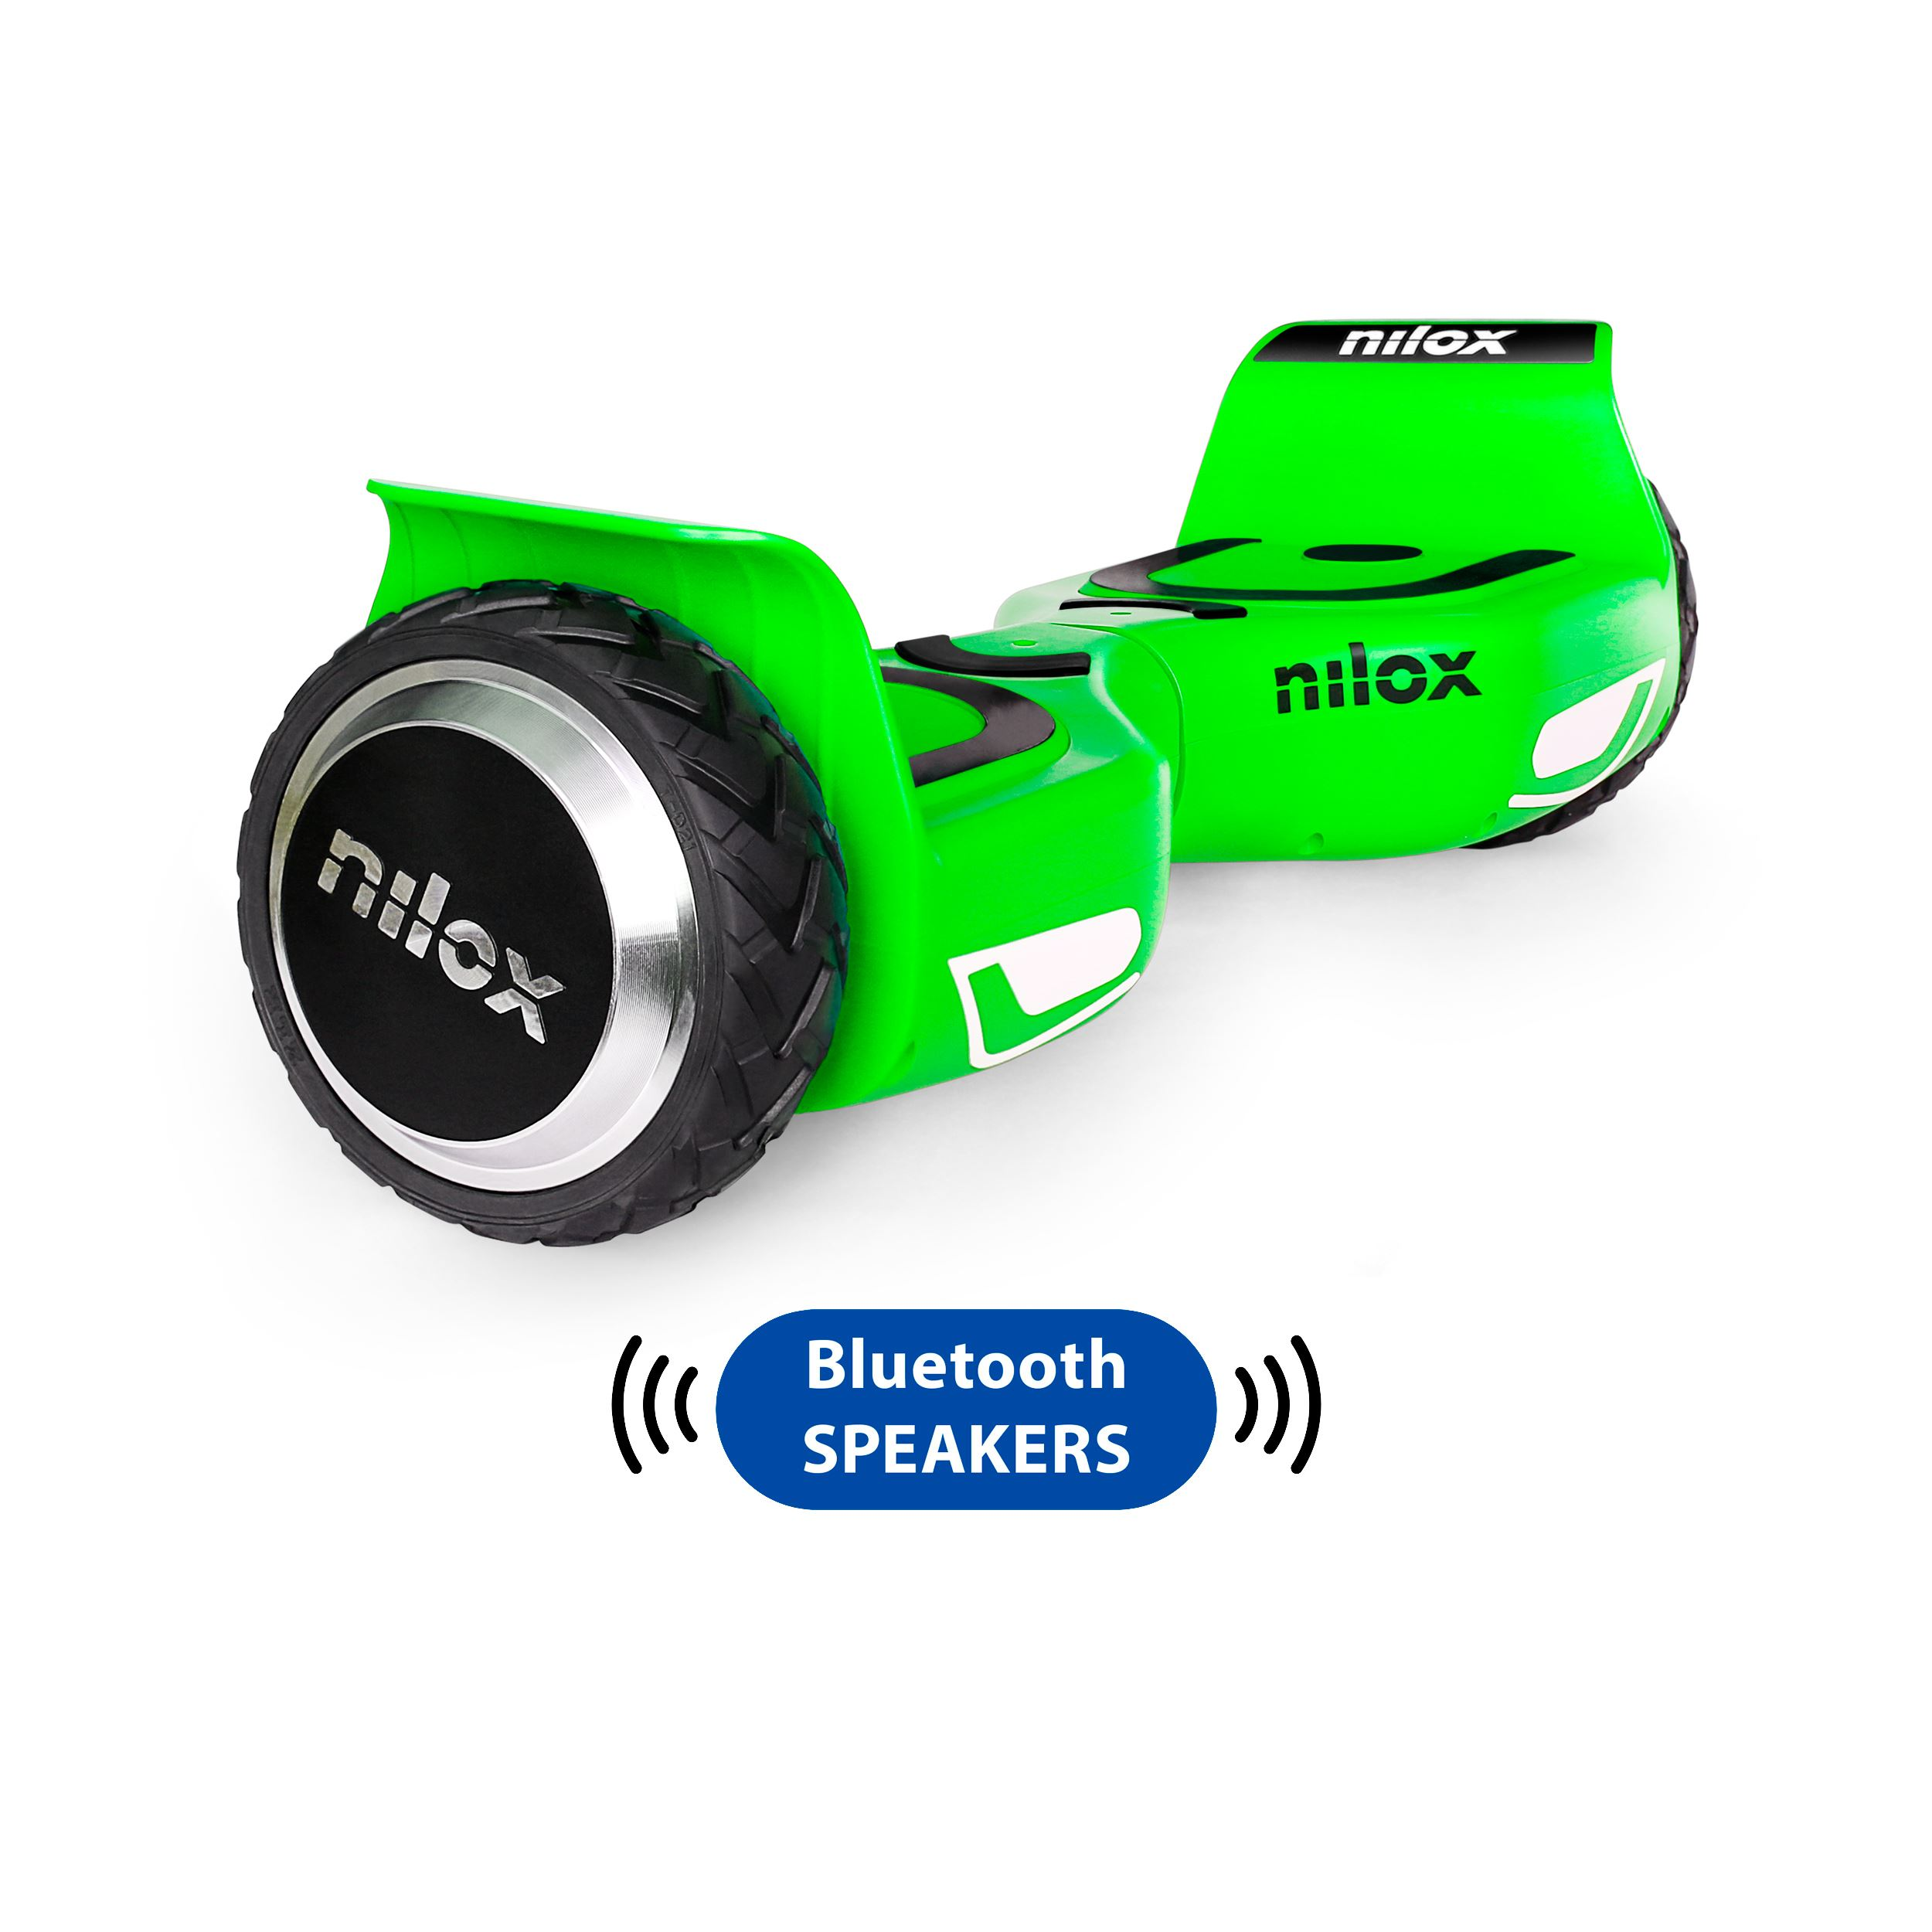 doc-2-hoverboard-plus-lime-green-30nxbk65bwn06-505311-hd.jpg